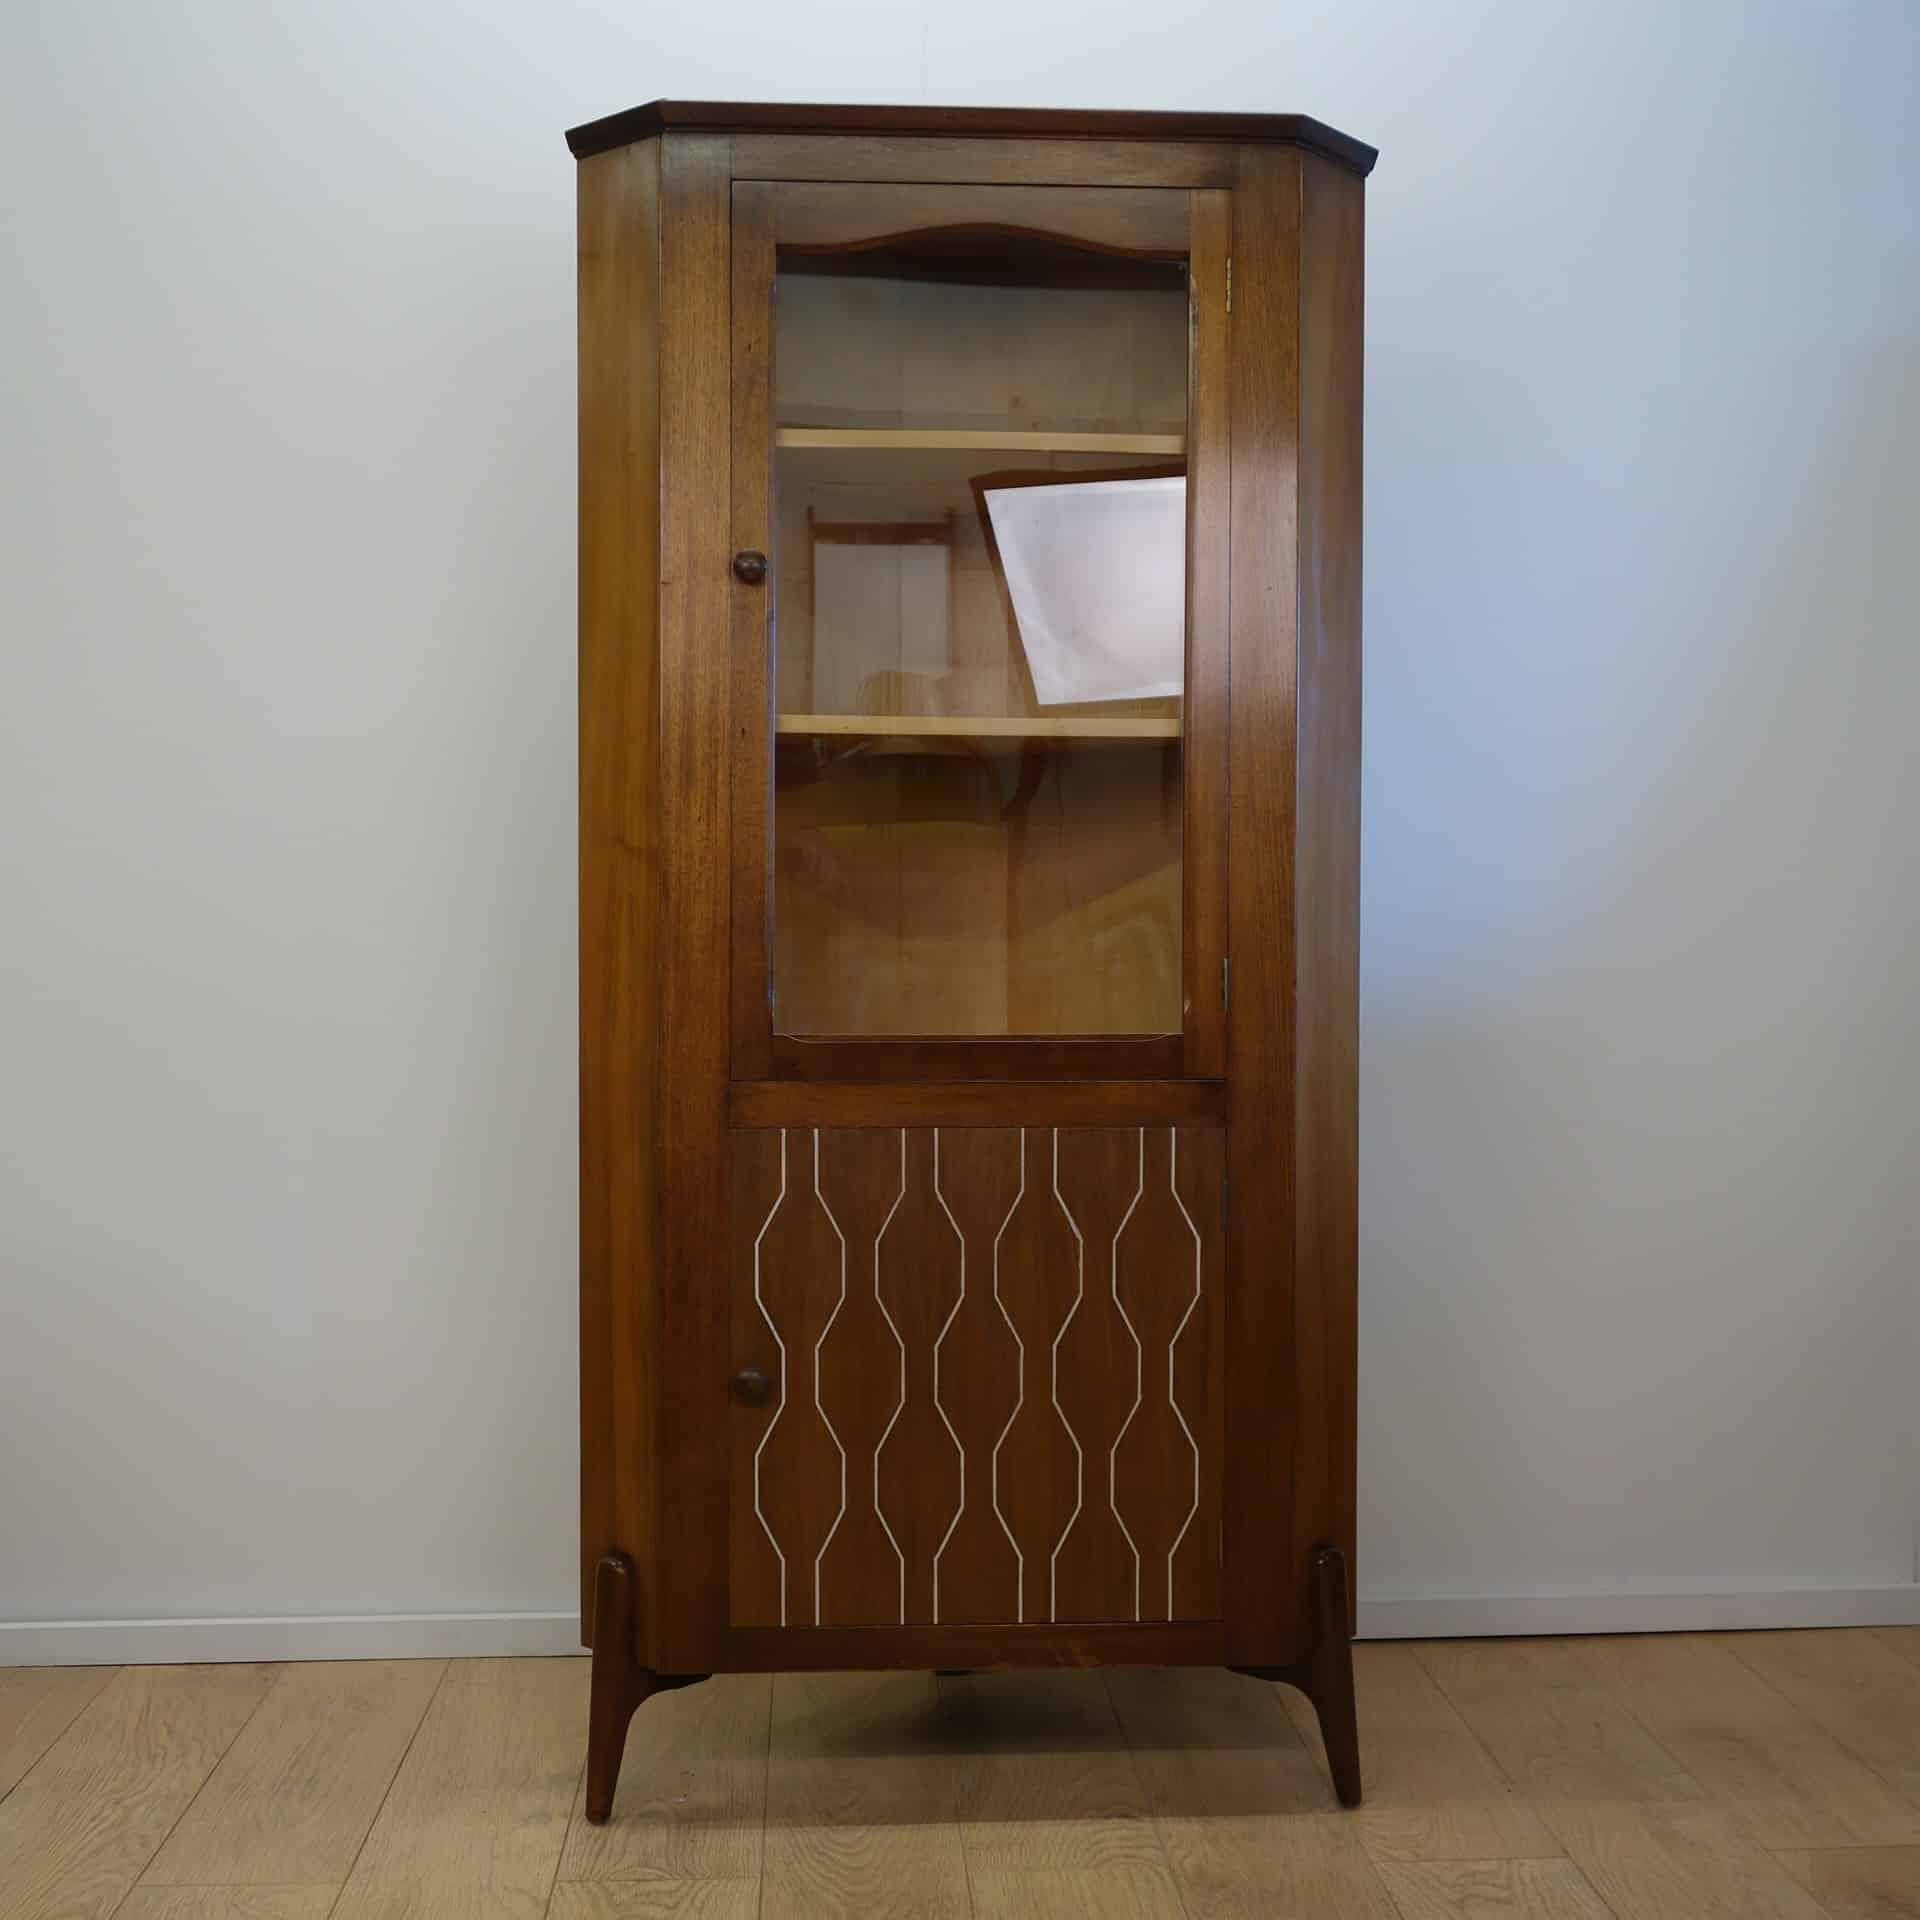 Doors Everest 1950s Corner Cabinet By Everest Mark Parrish Mid Century